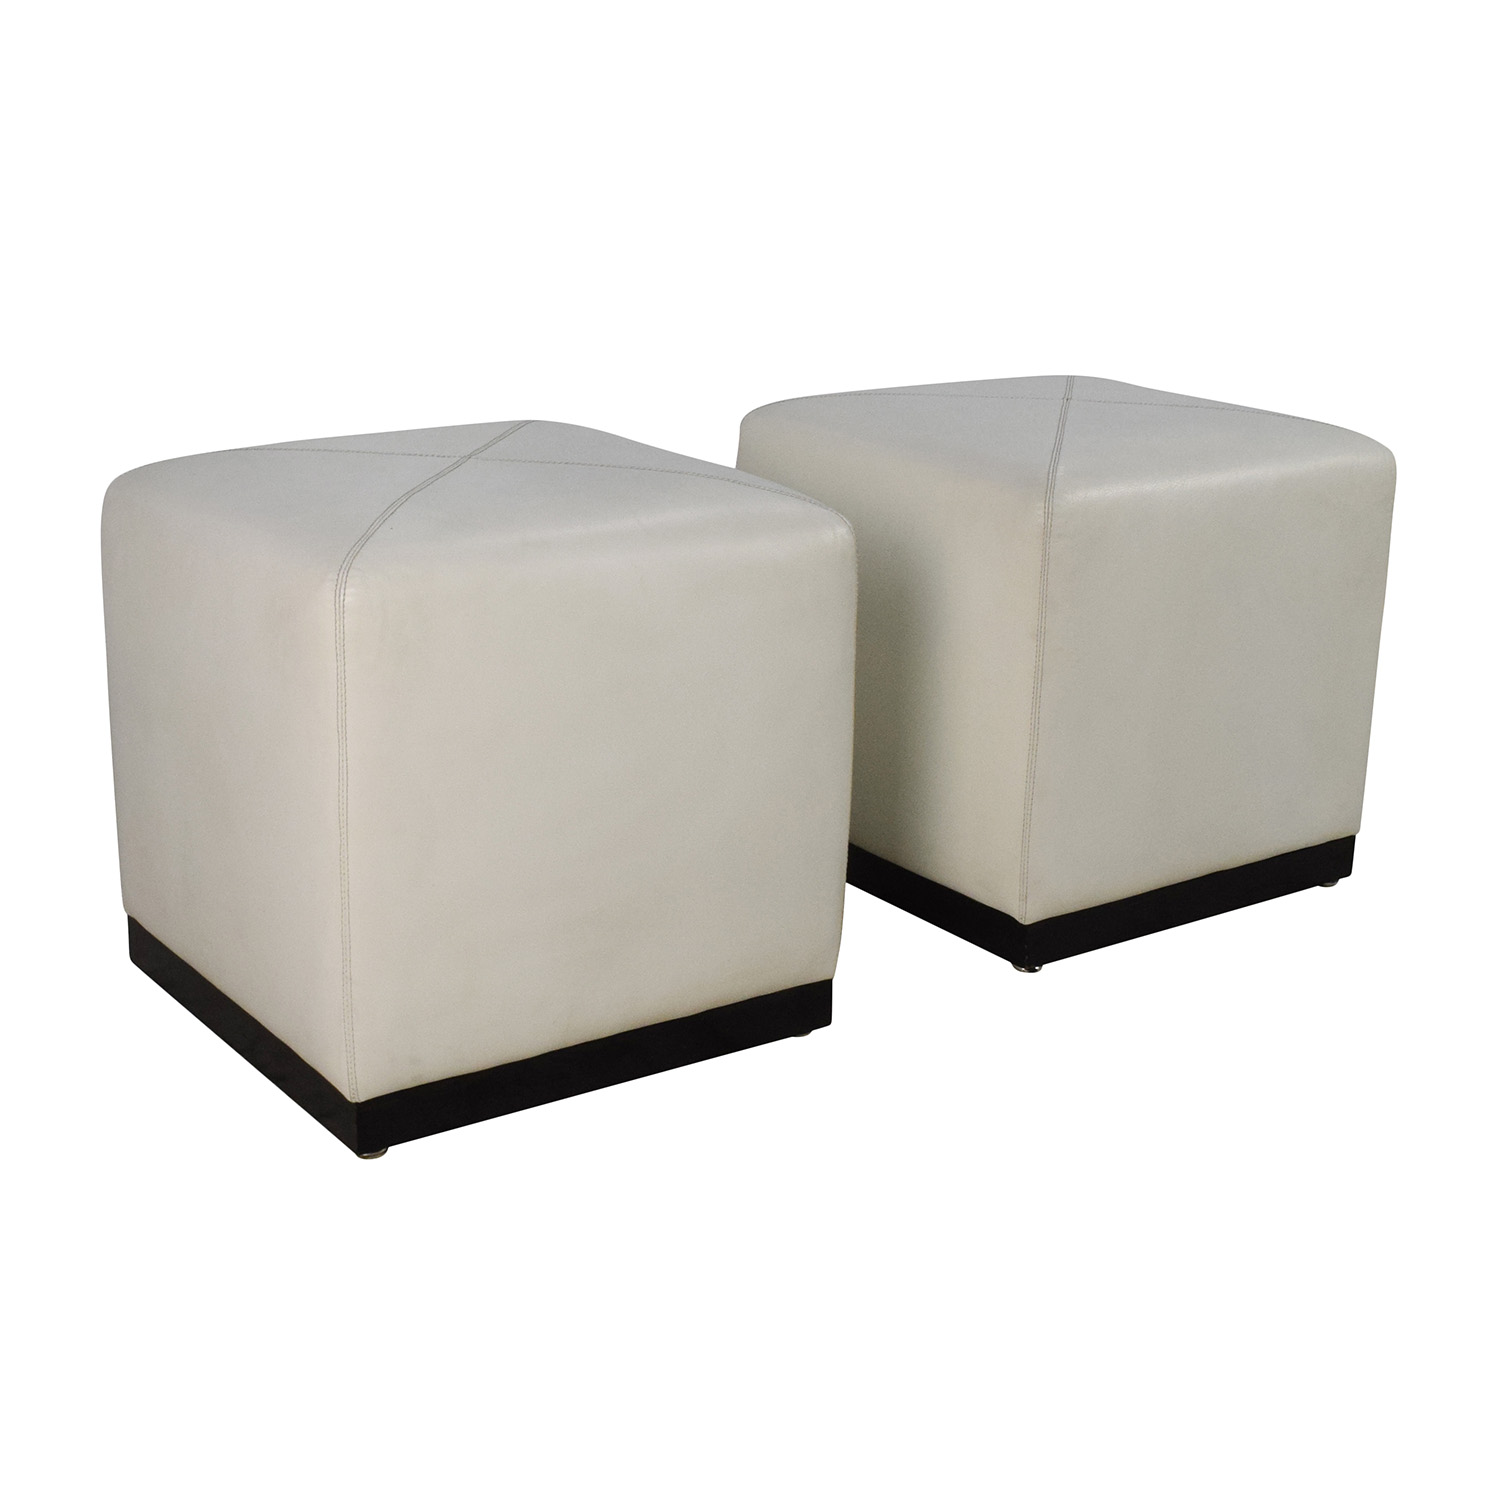 off  pair of white leather ottoman cubes  storage -  pair of white leather ottoman cubes sale